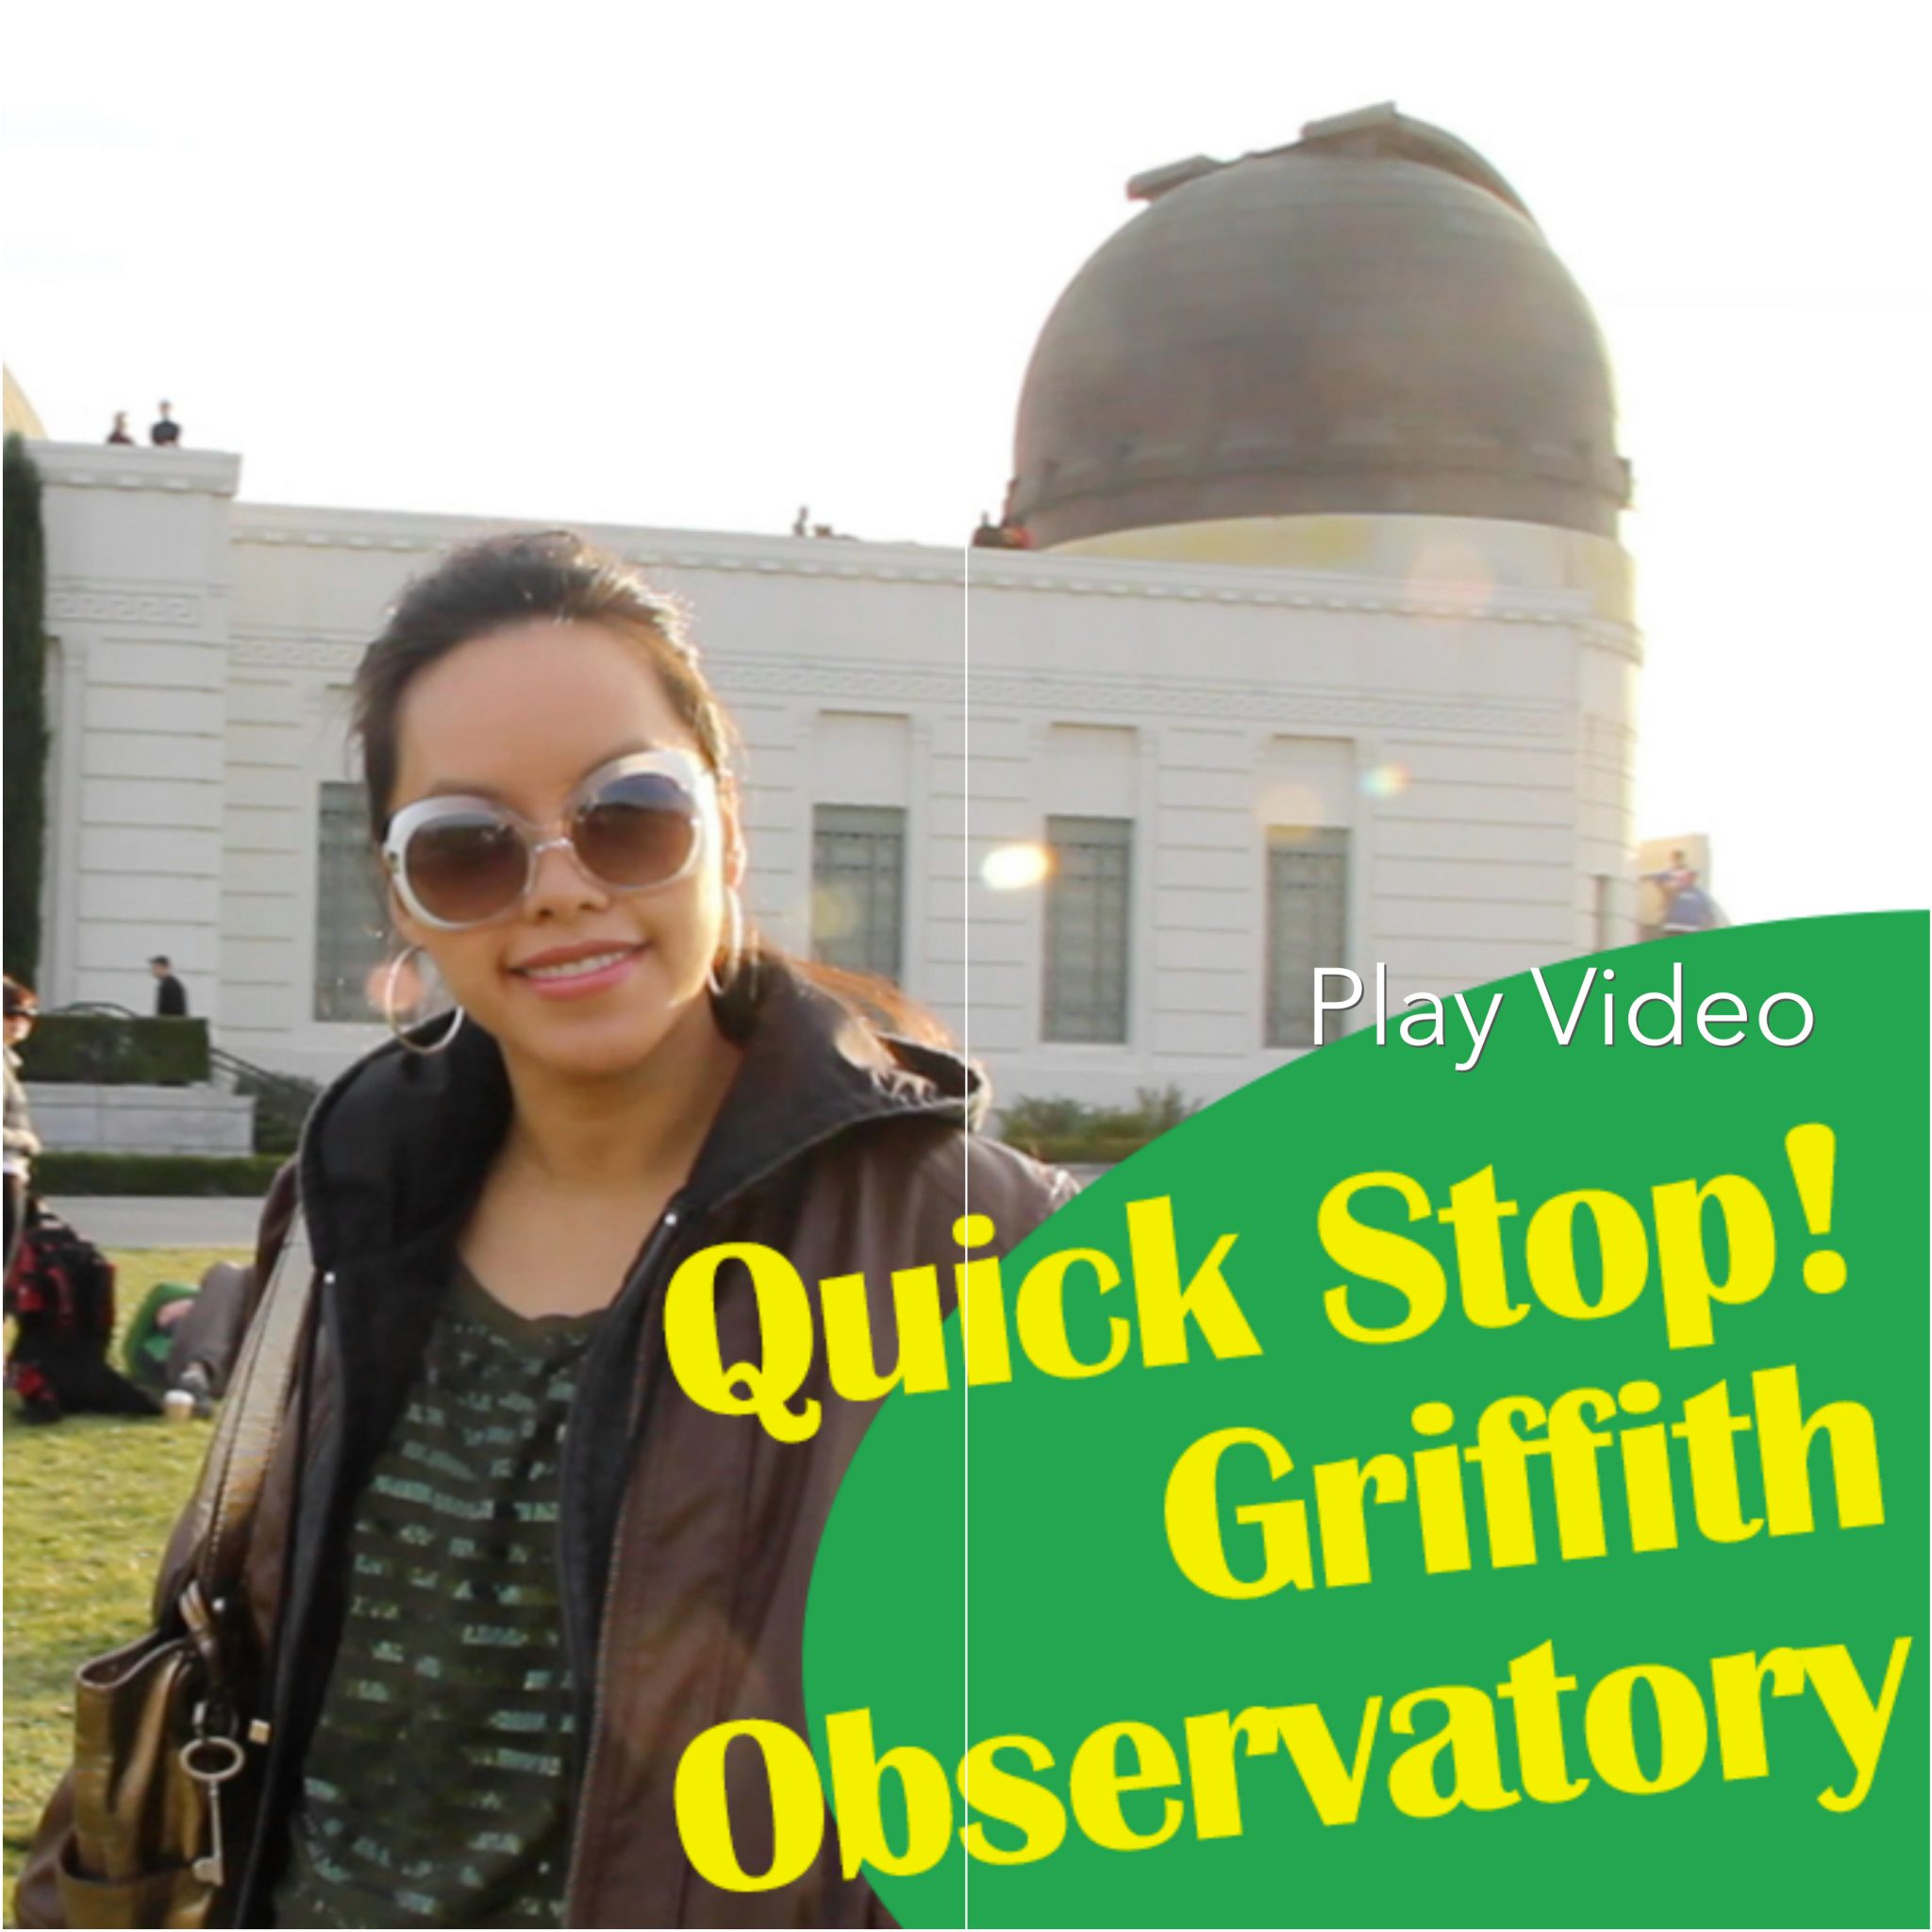 instagram-pslilyboutique-los-angeles-fashion-blogger-quick-stop-griffith-observatory-california-ootd-09-09-2015-Cover